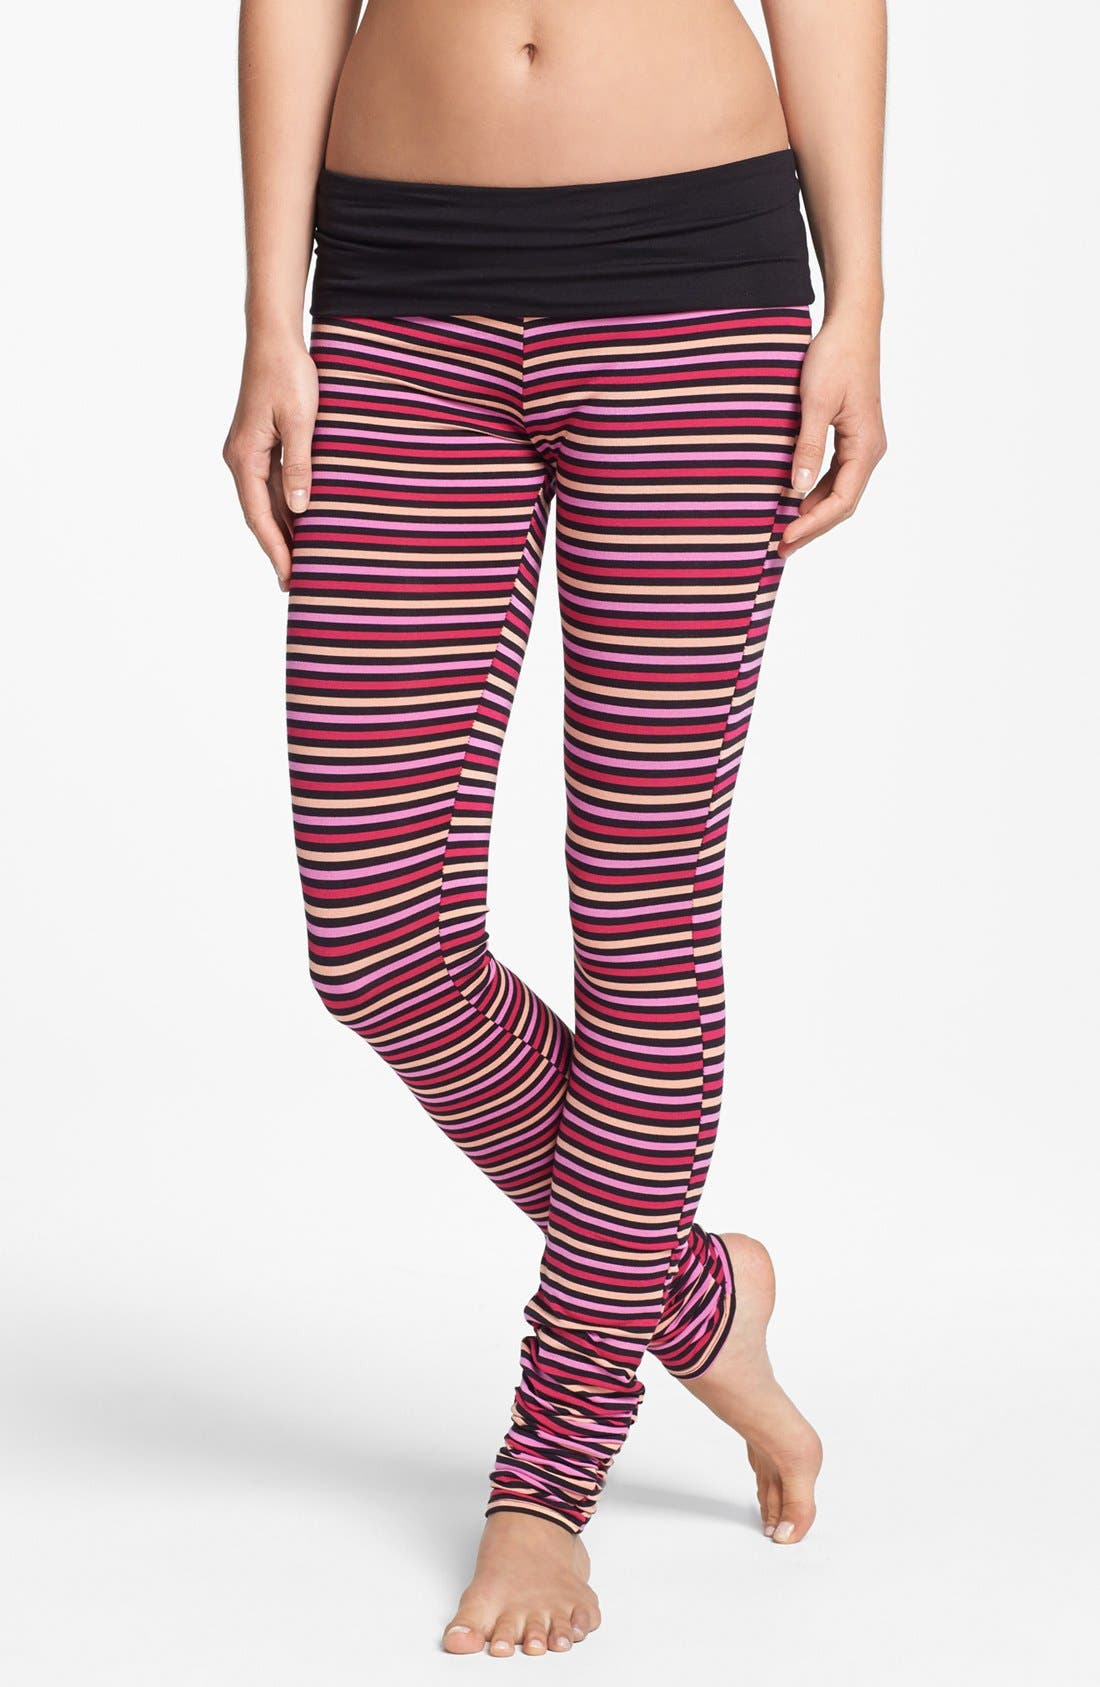 Alternate Image 1 Selected - DKNY 'Soho Mews Yoga Skinnies' Leggings